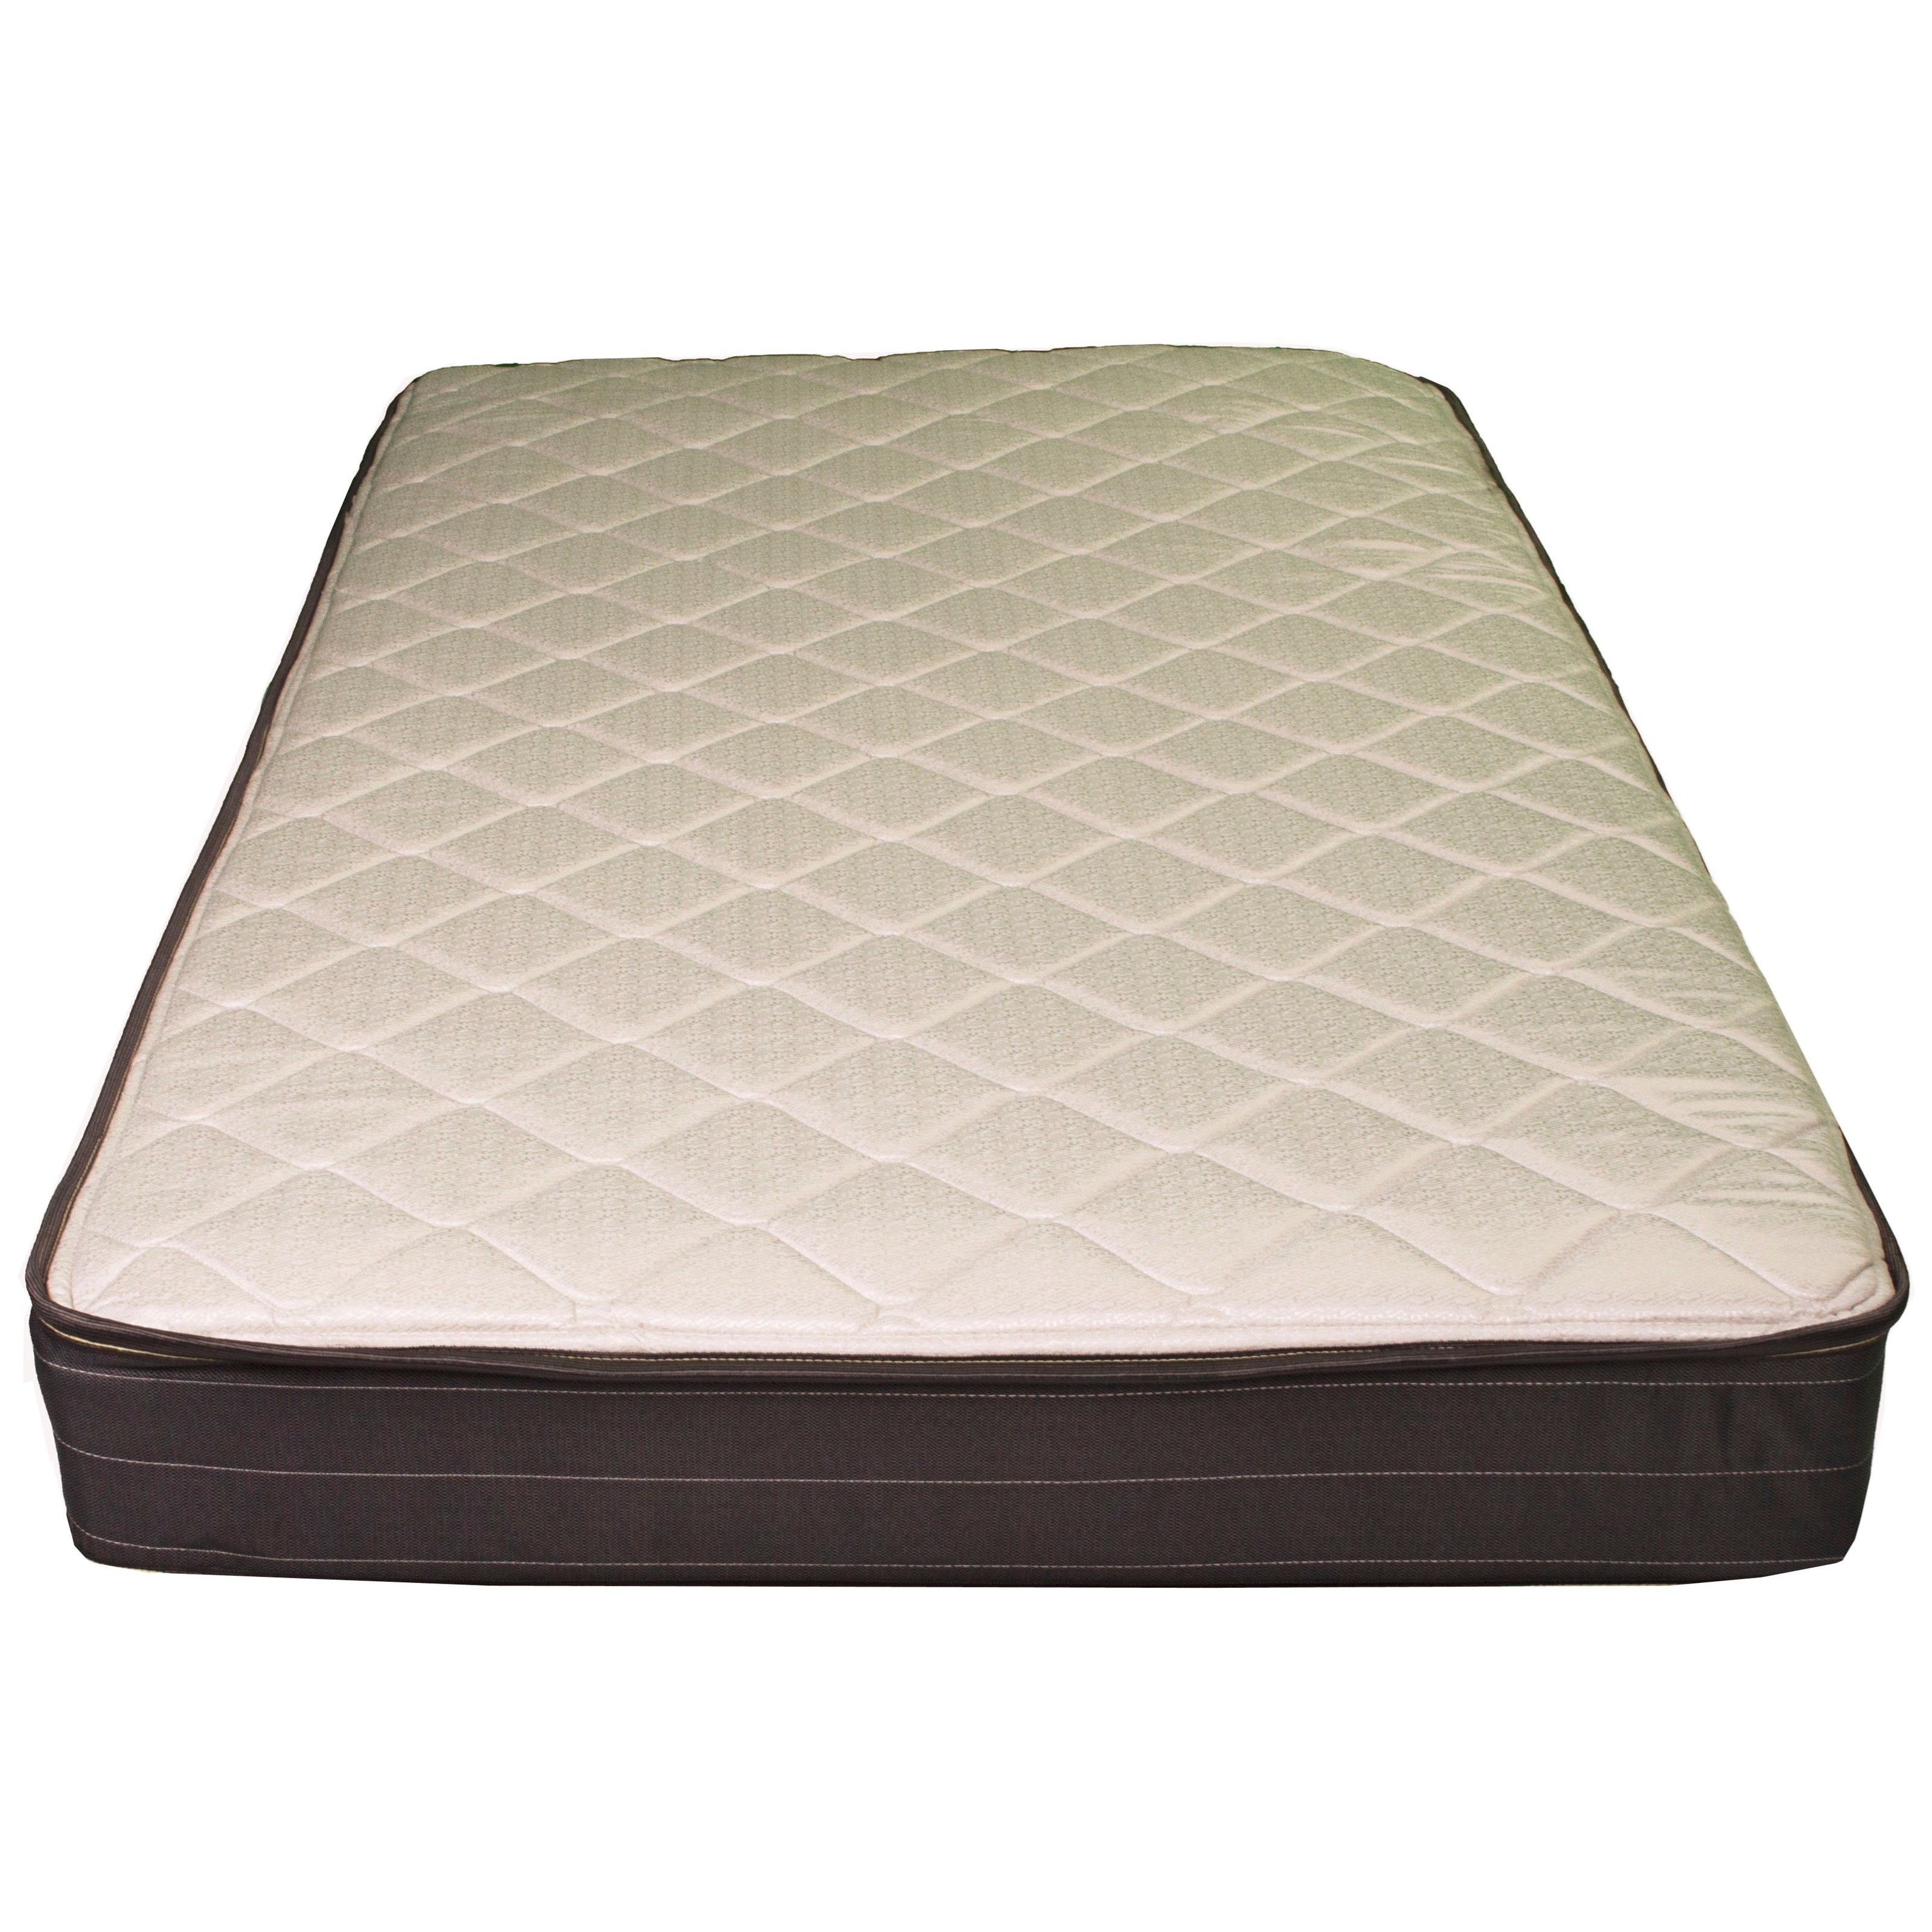 """Artisan Queen 7 1/2"""" Firm Mattress by Solstice Sleep Products at EFO Furniture Outlet"""